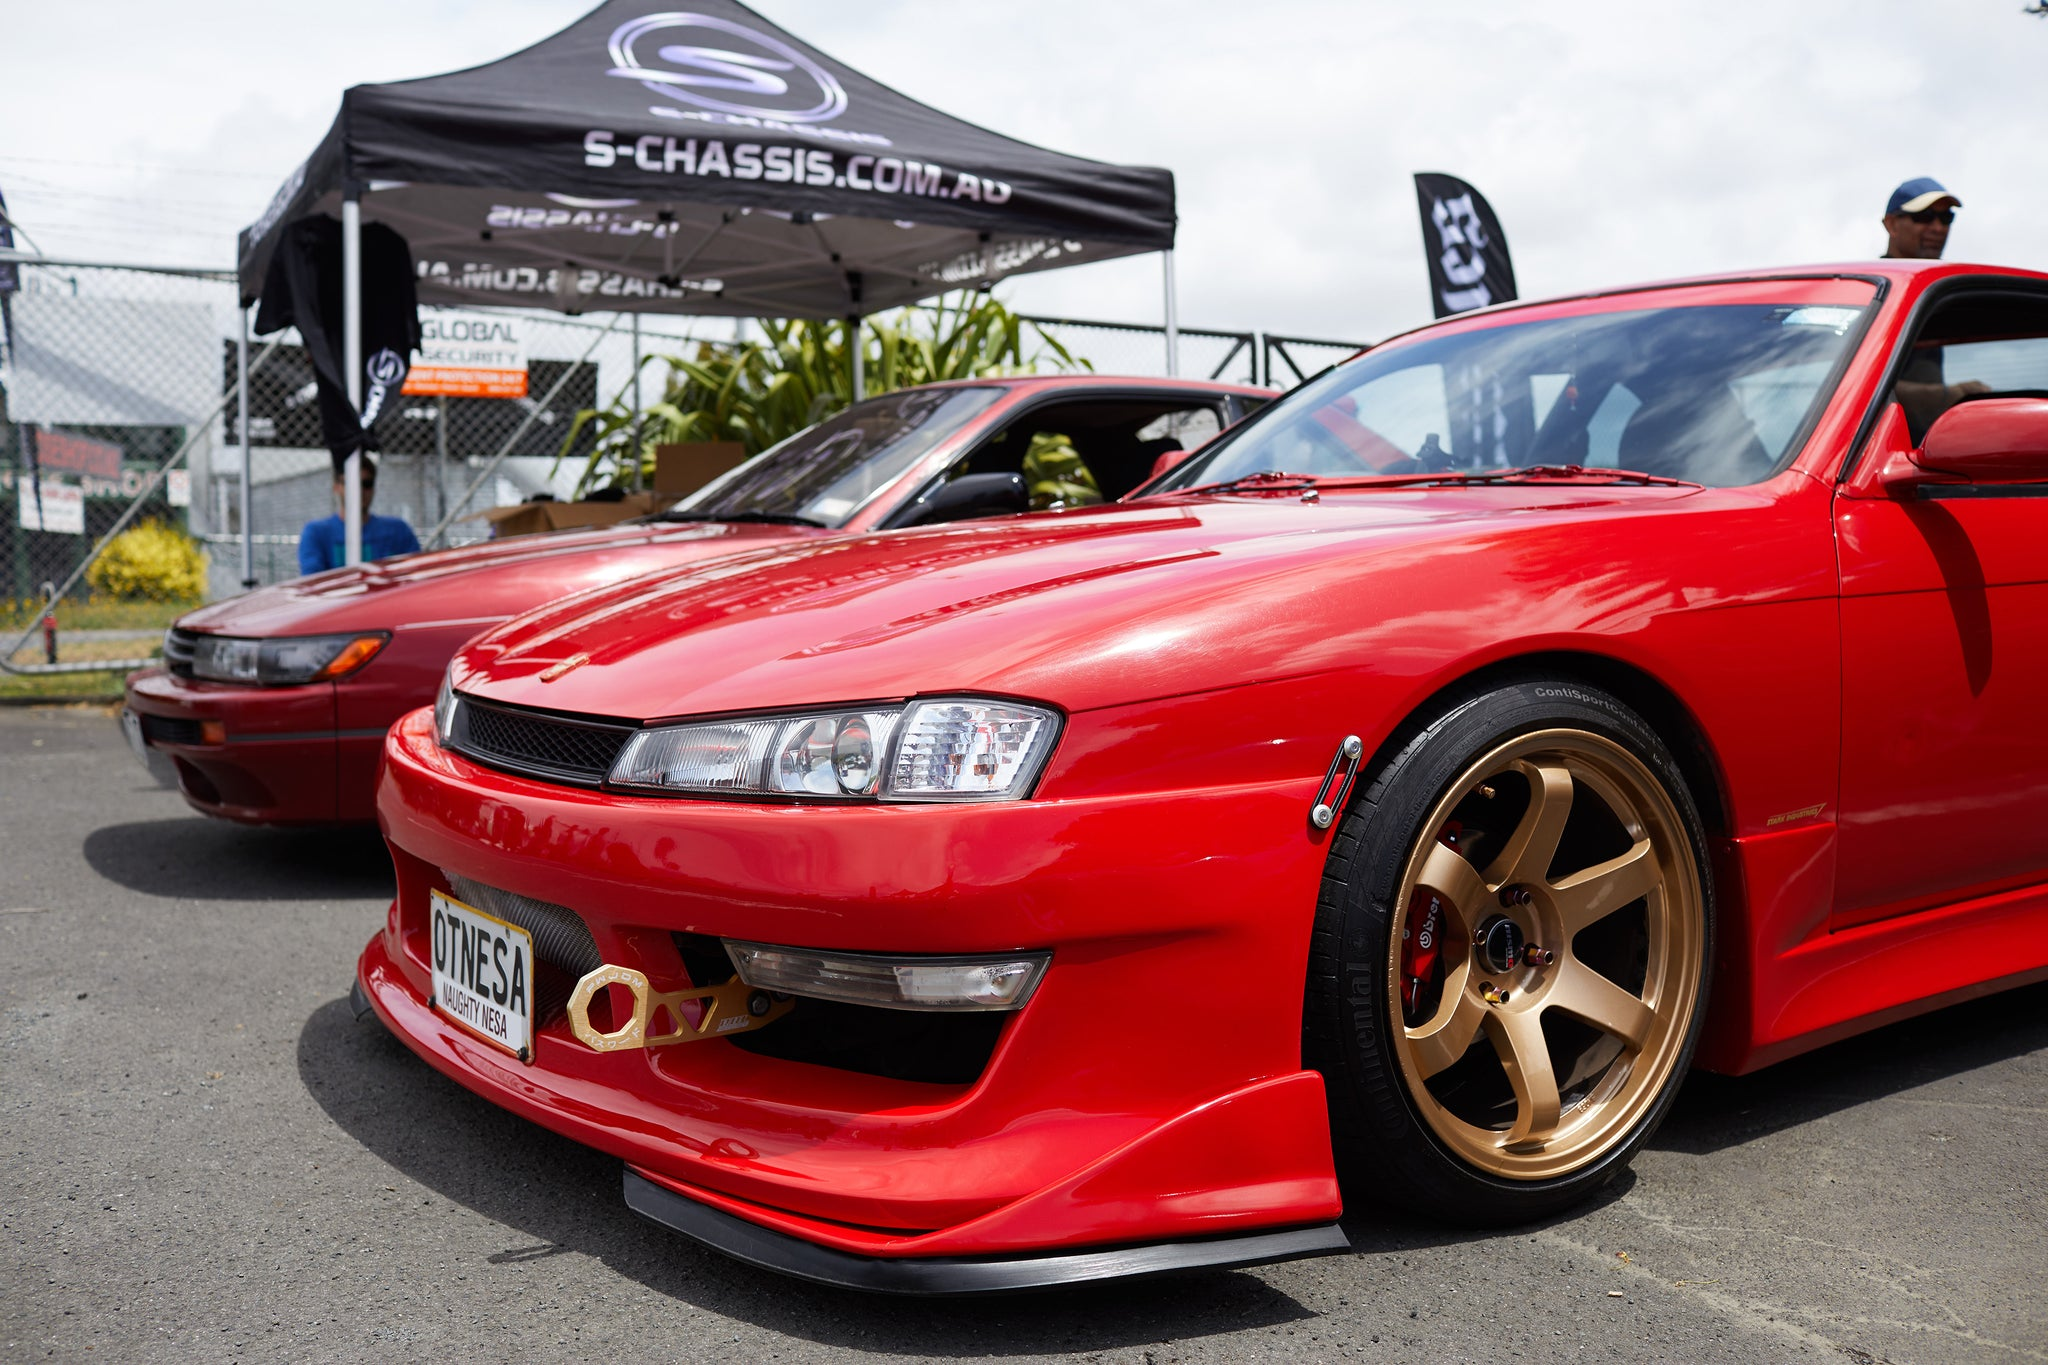 Nissan S14 at Scarles performance